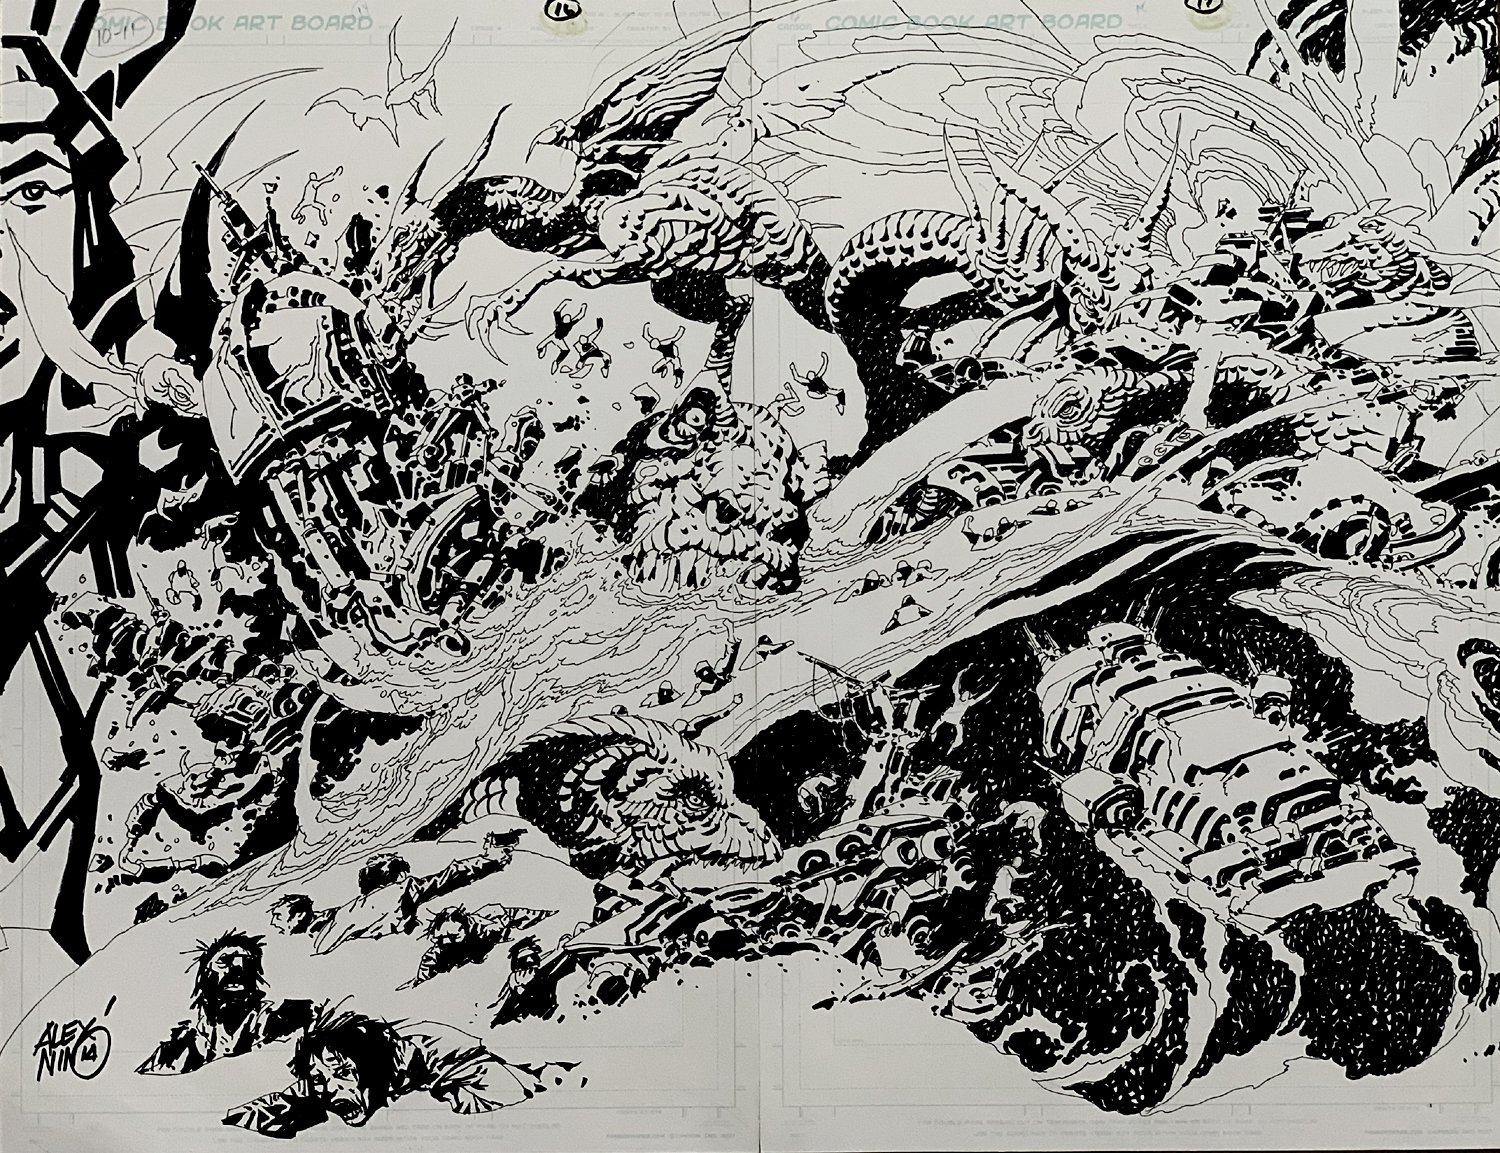 Time Machine 2: Search For Dinosaurs Double Spread Splash